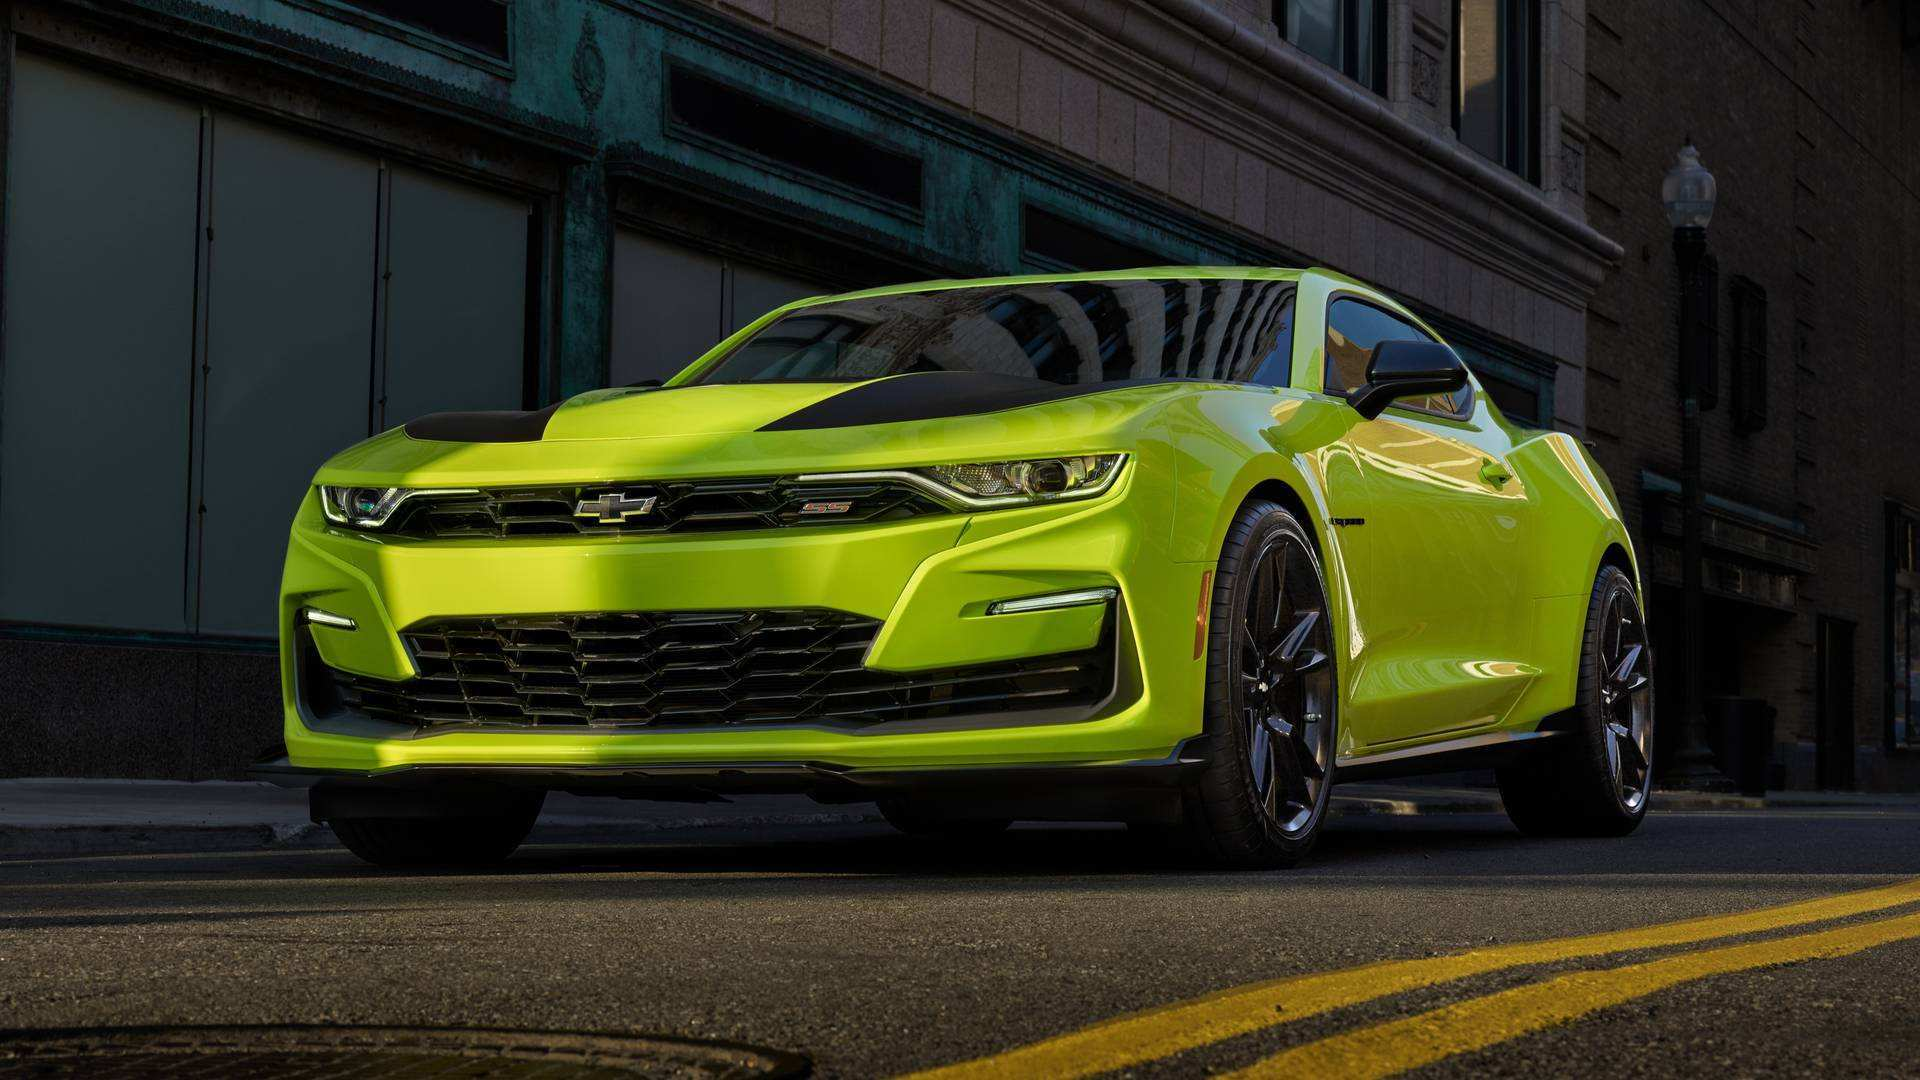 13 Gallery of 2020 Chevrolet Camaro Zl1 1Le Release Date with 2020 Chevrolet Camaro Zl1 1Le